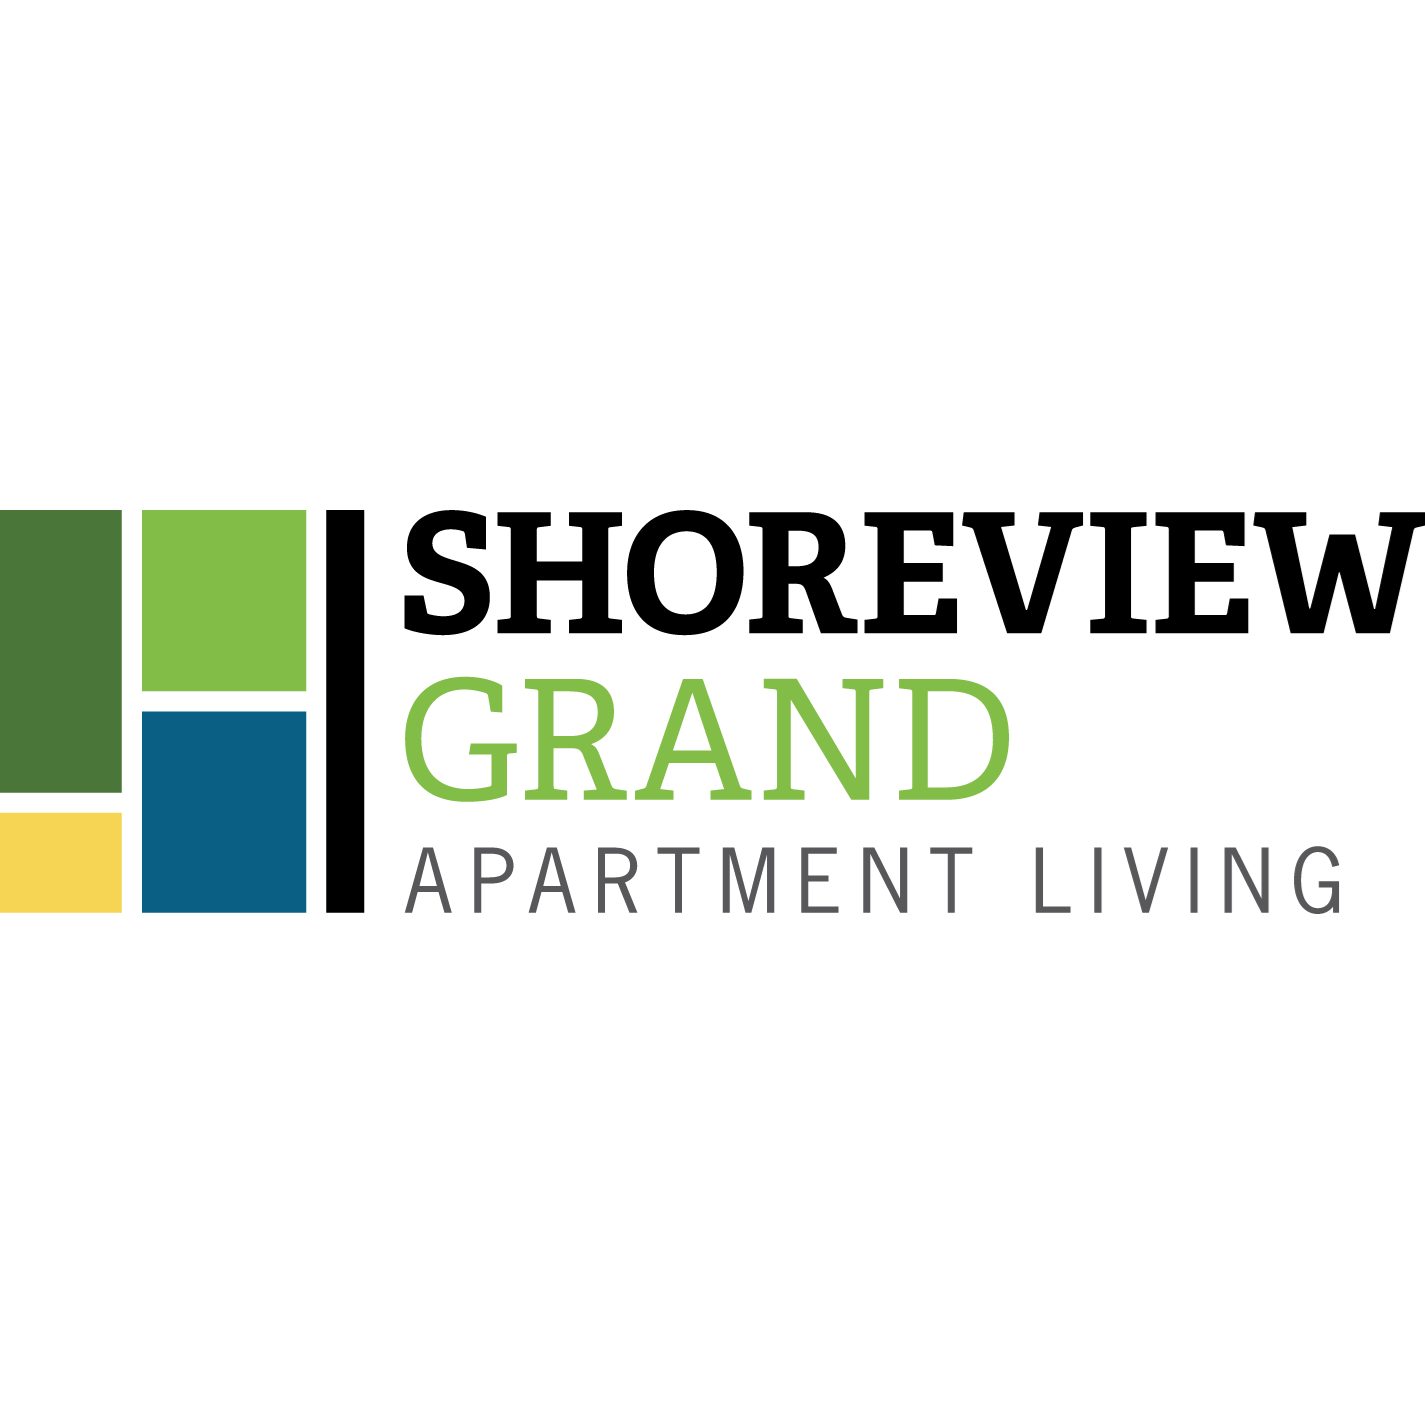 Apartments Near Shoreview Mn